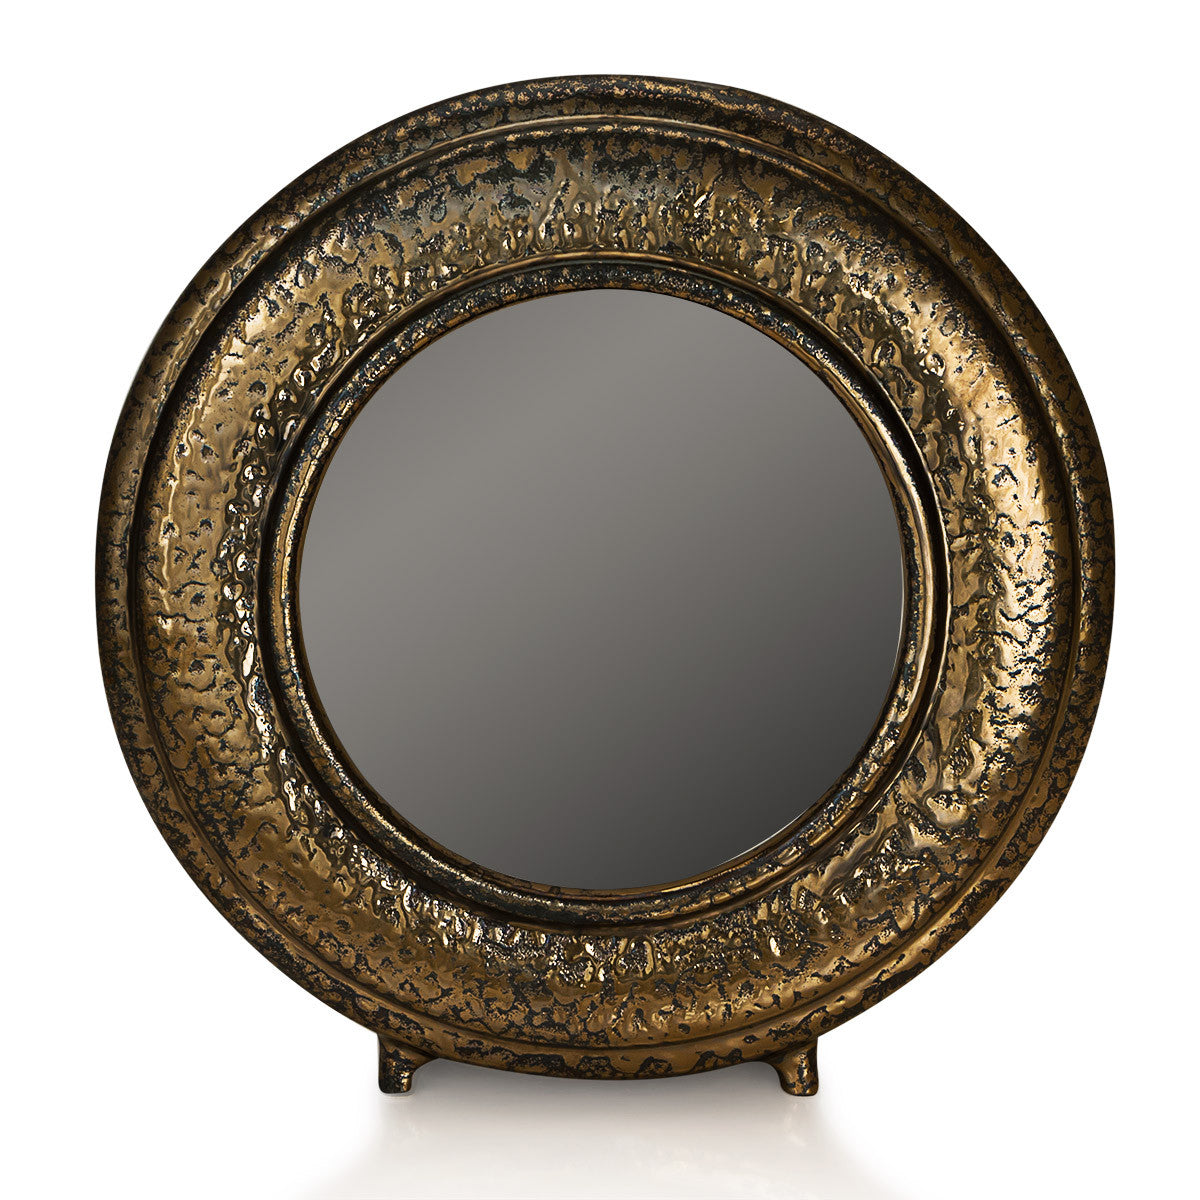 Smooth round picture frame mirror